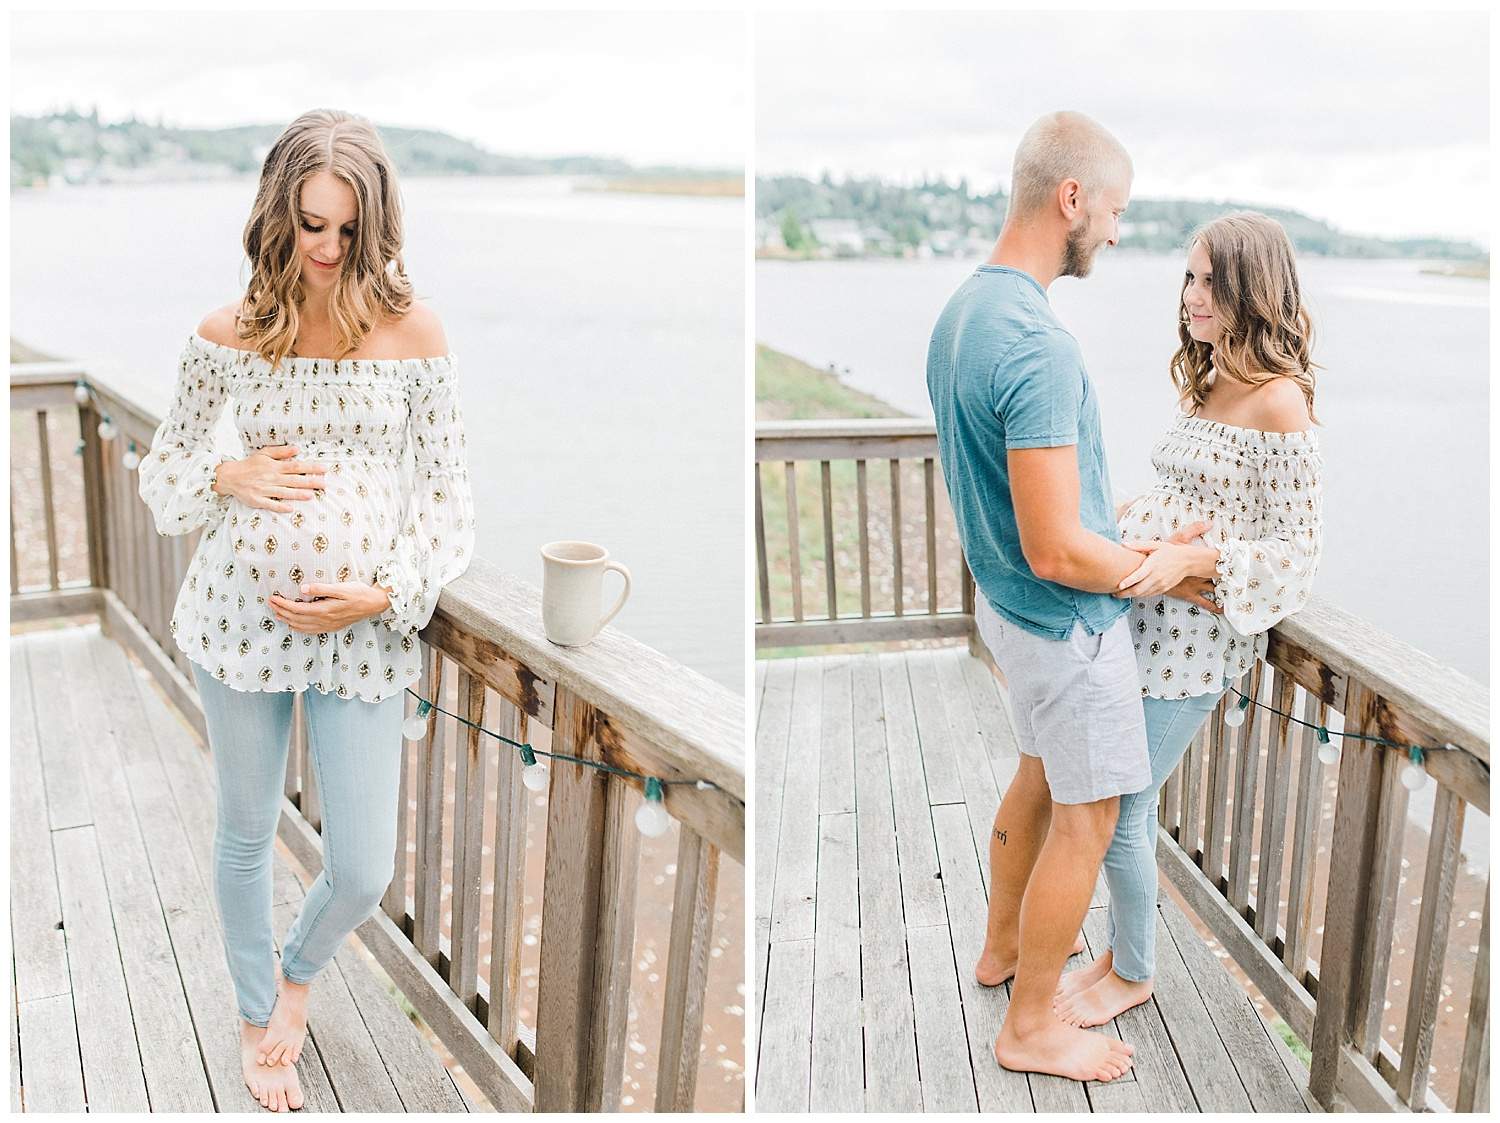 The Most Perfect In Home Maternity Lifestyle Photo Session | Pregnancy Goals | Emma Rose Company Seattle and Portland Wedding and Potrait Photographer | Dream Chasers Workshop_0010.jpg